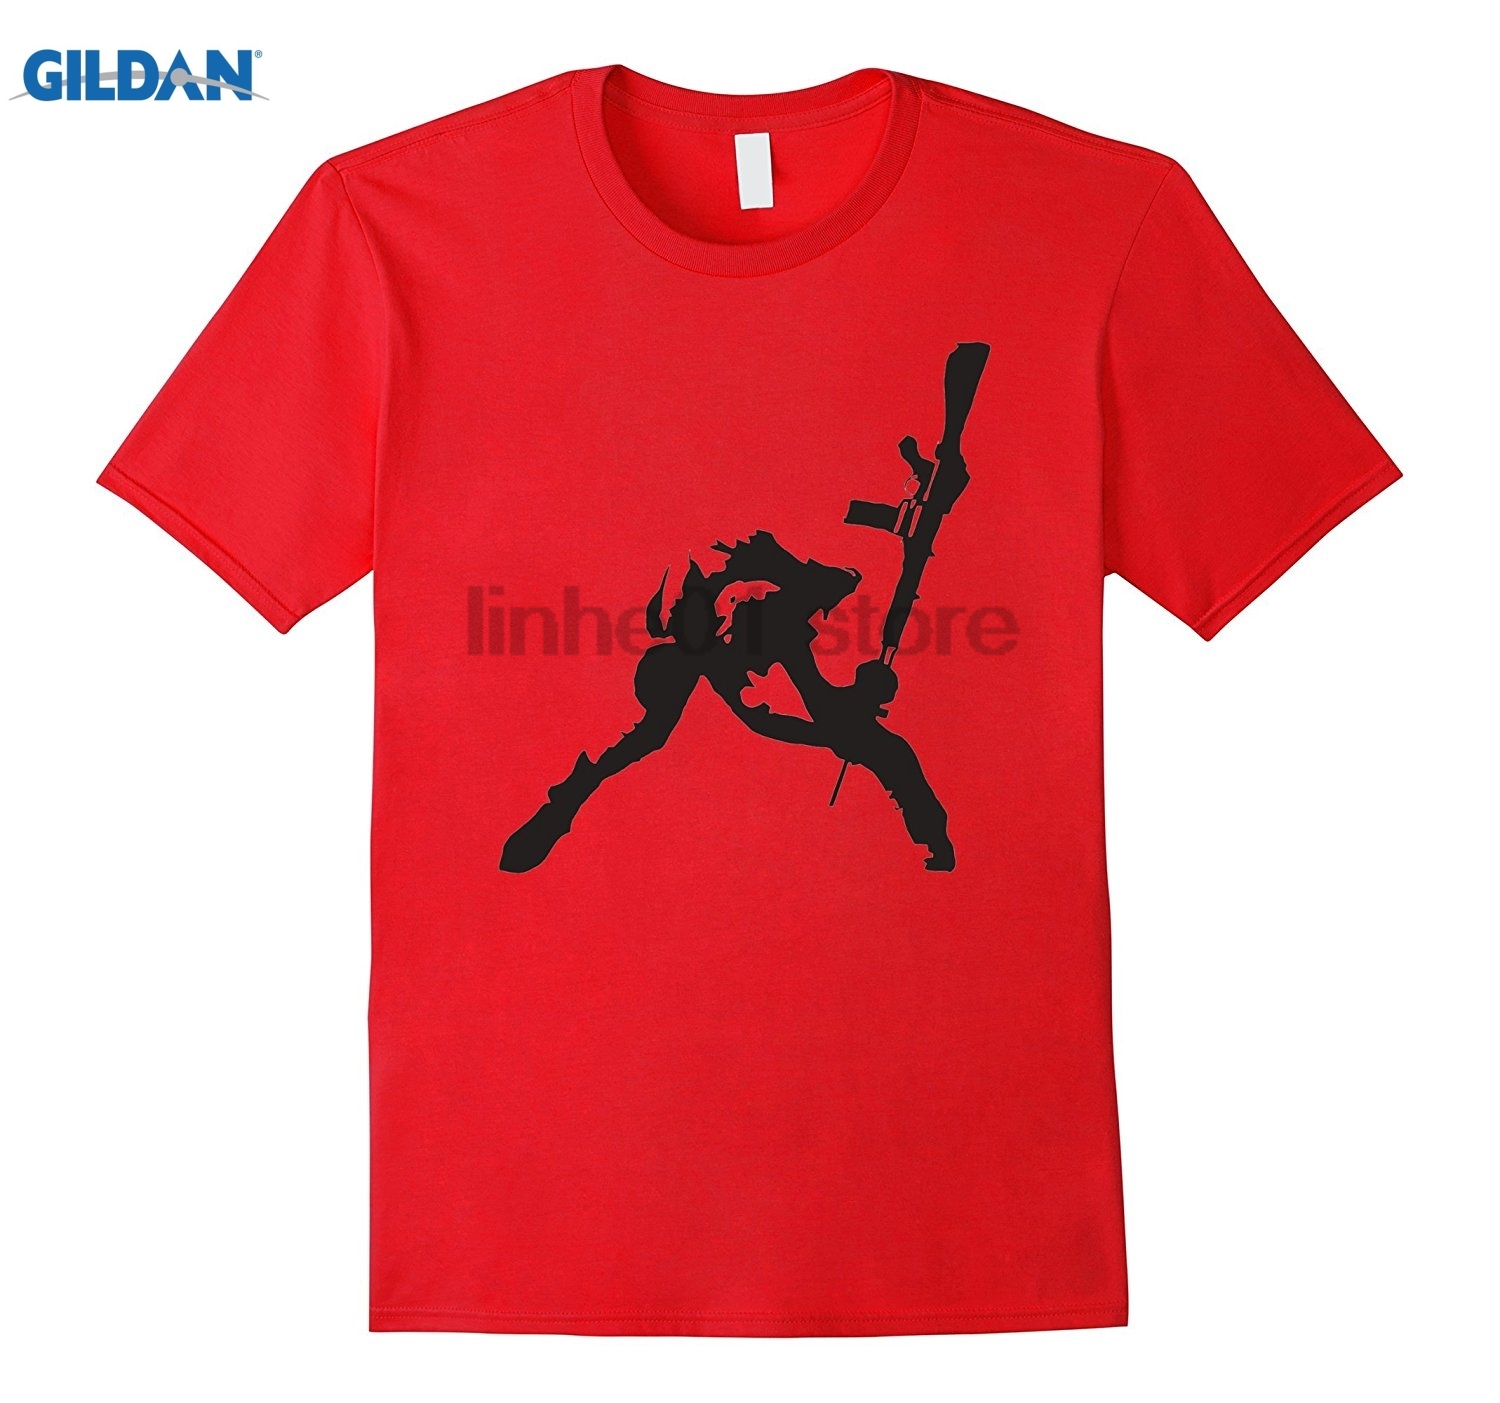 GILDAN Dicky Ticker London Rifle Smash T-shirt Calling Hot Womens T-shirt